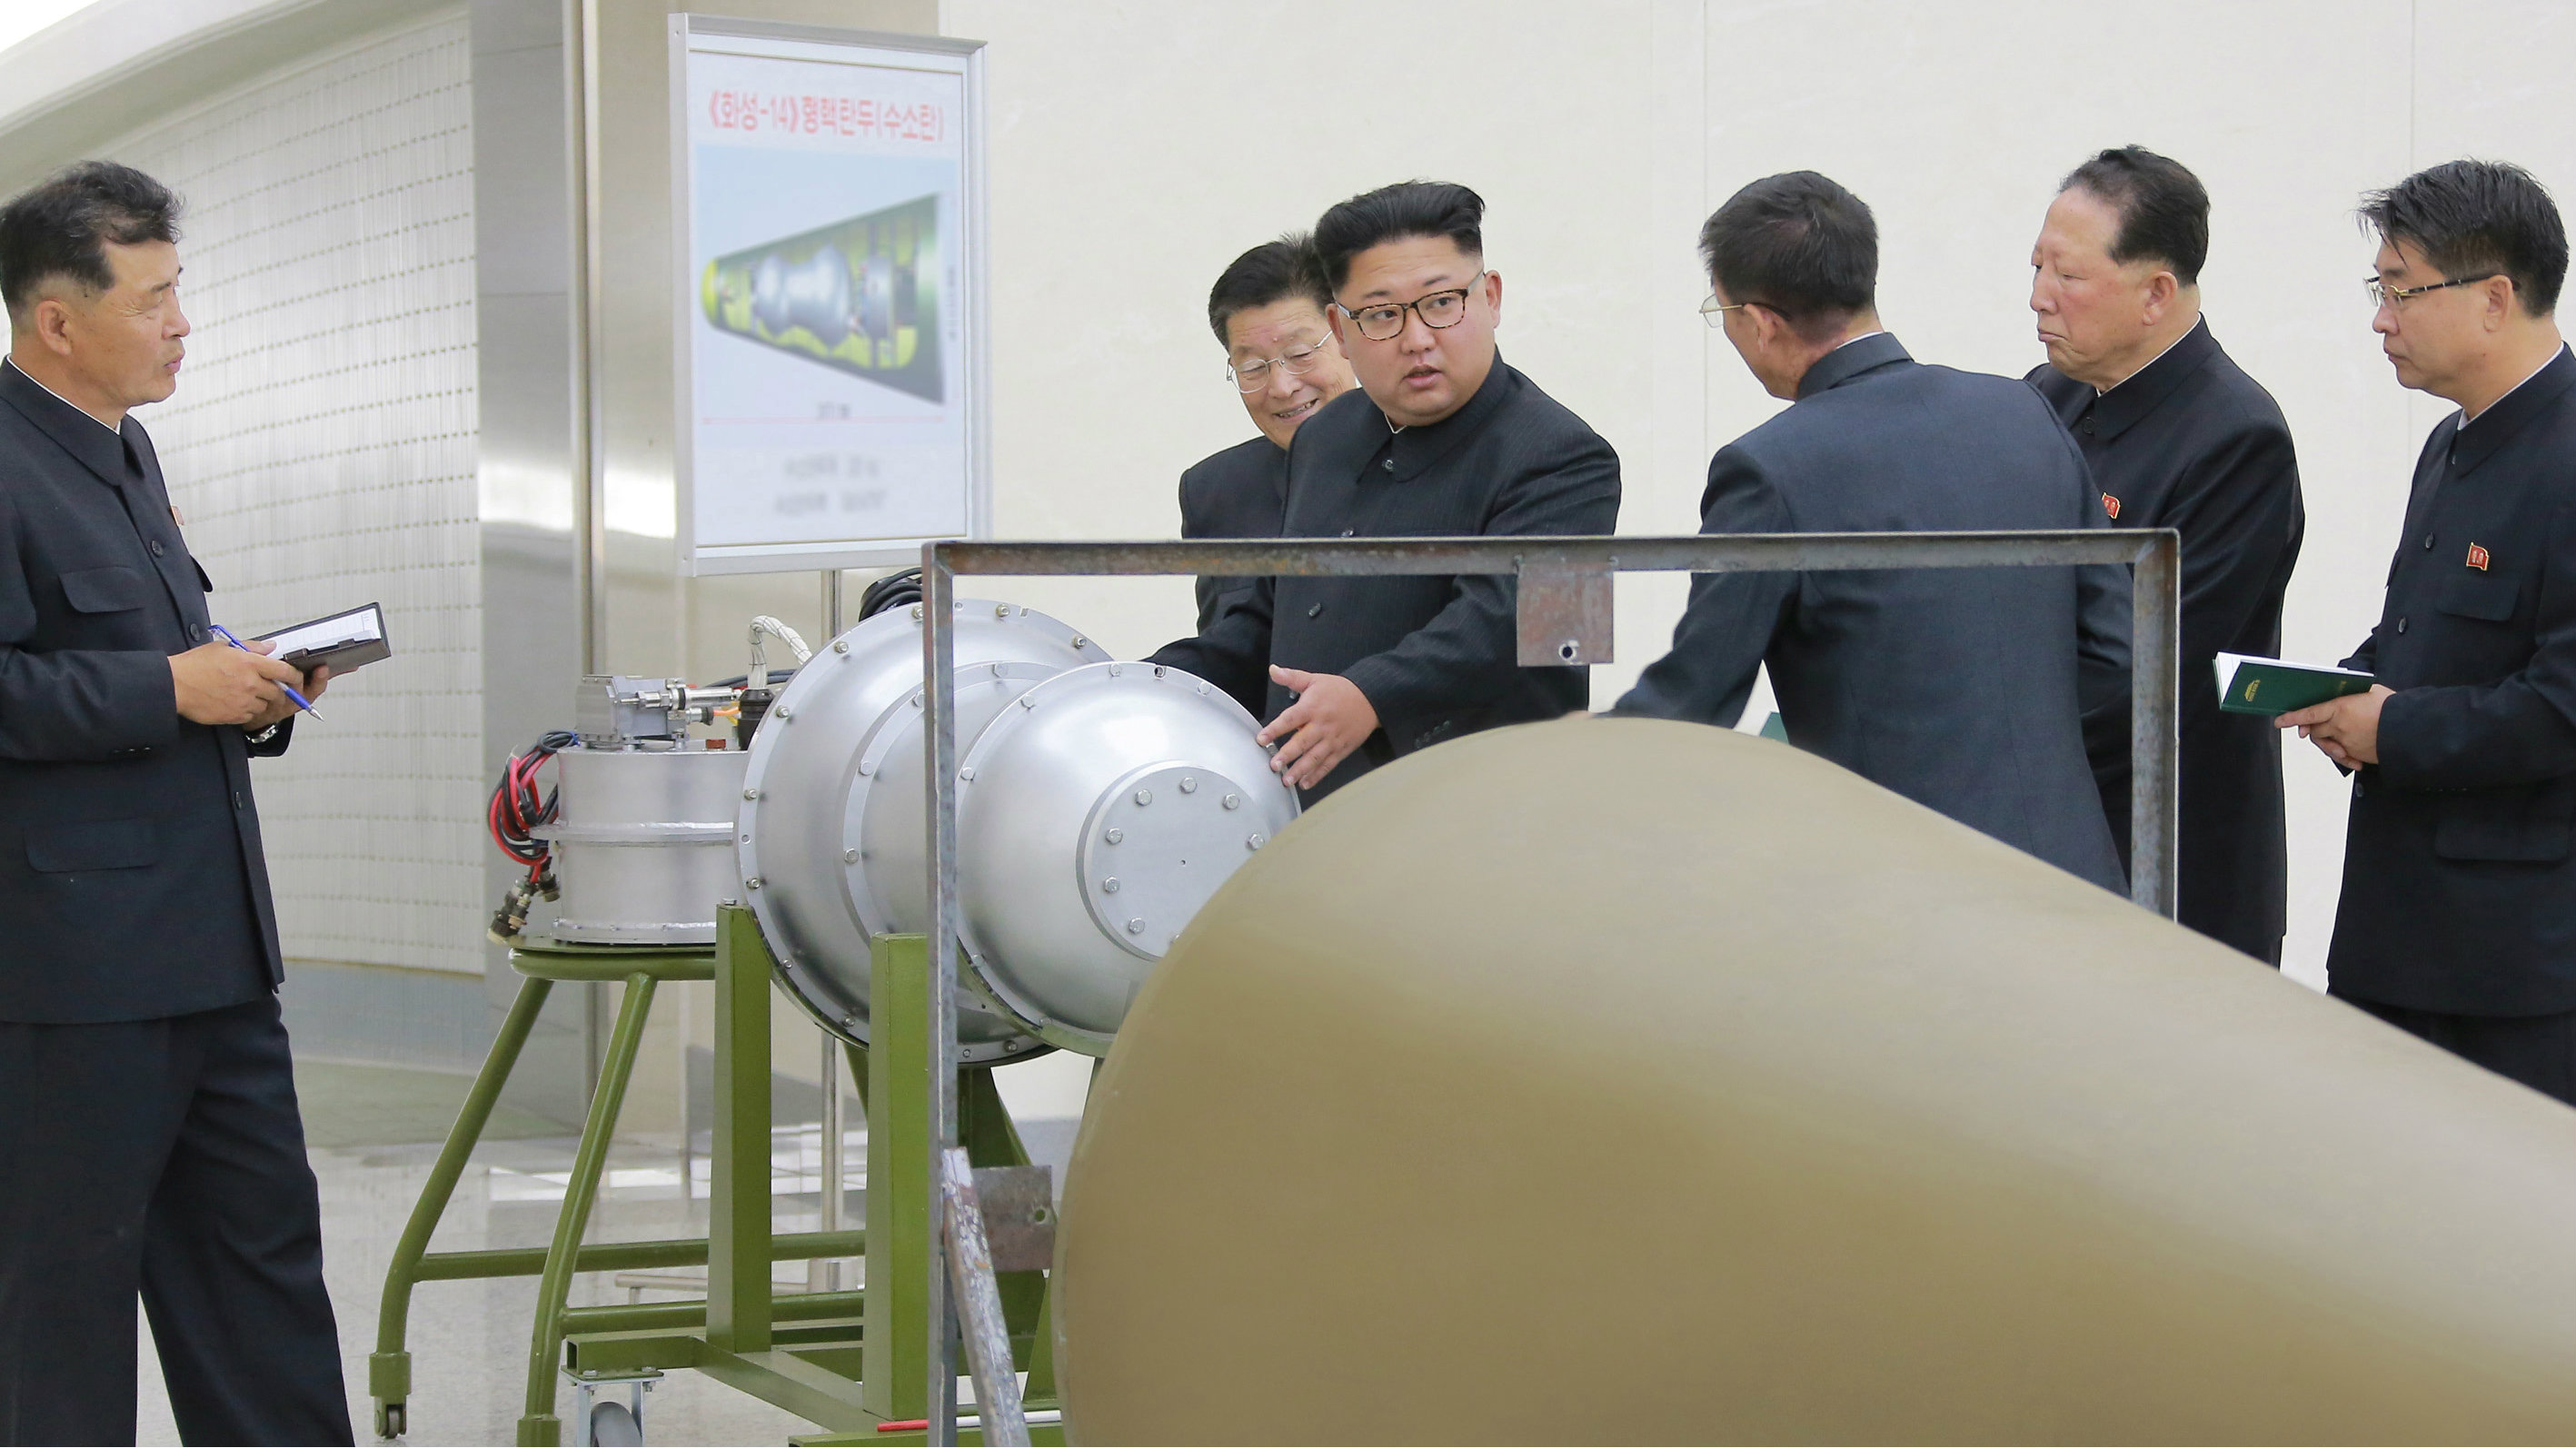 North Korean leader Kim Jong Un provides guidance on a nuclear weapons program in this undated photo released by North Korea's Korean Central News Agency (KCNA) in Pyongyang September 3, 2017.